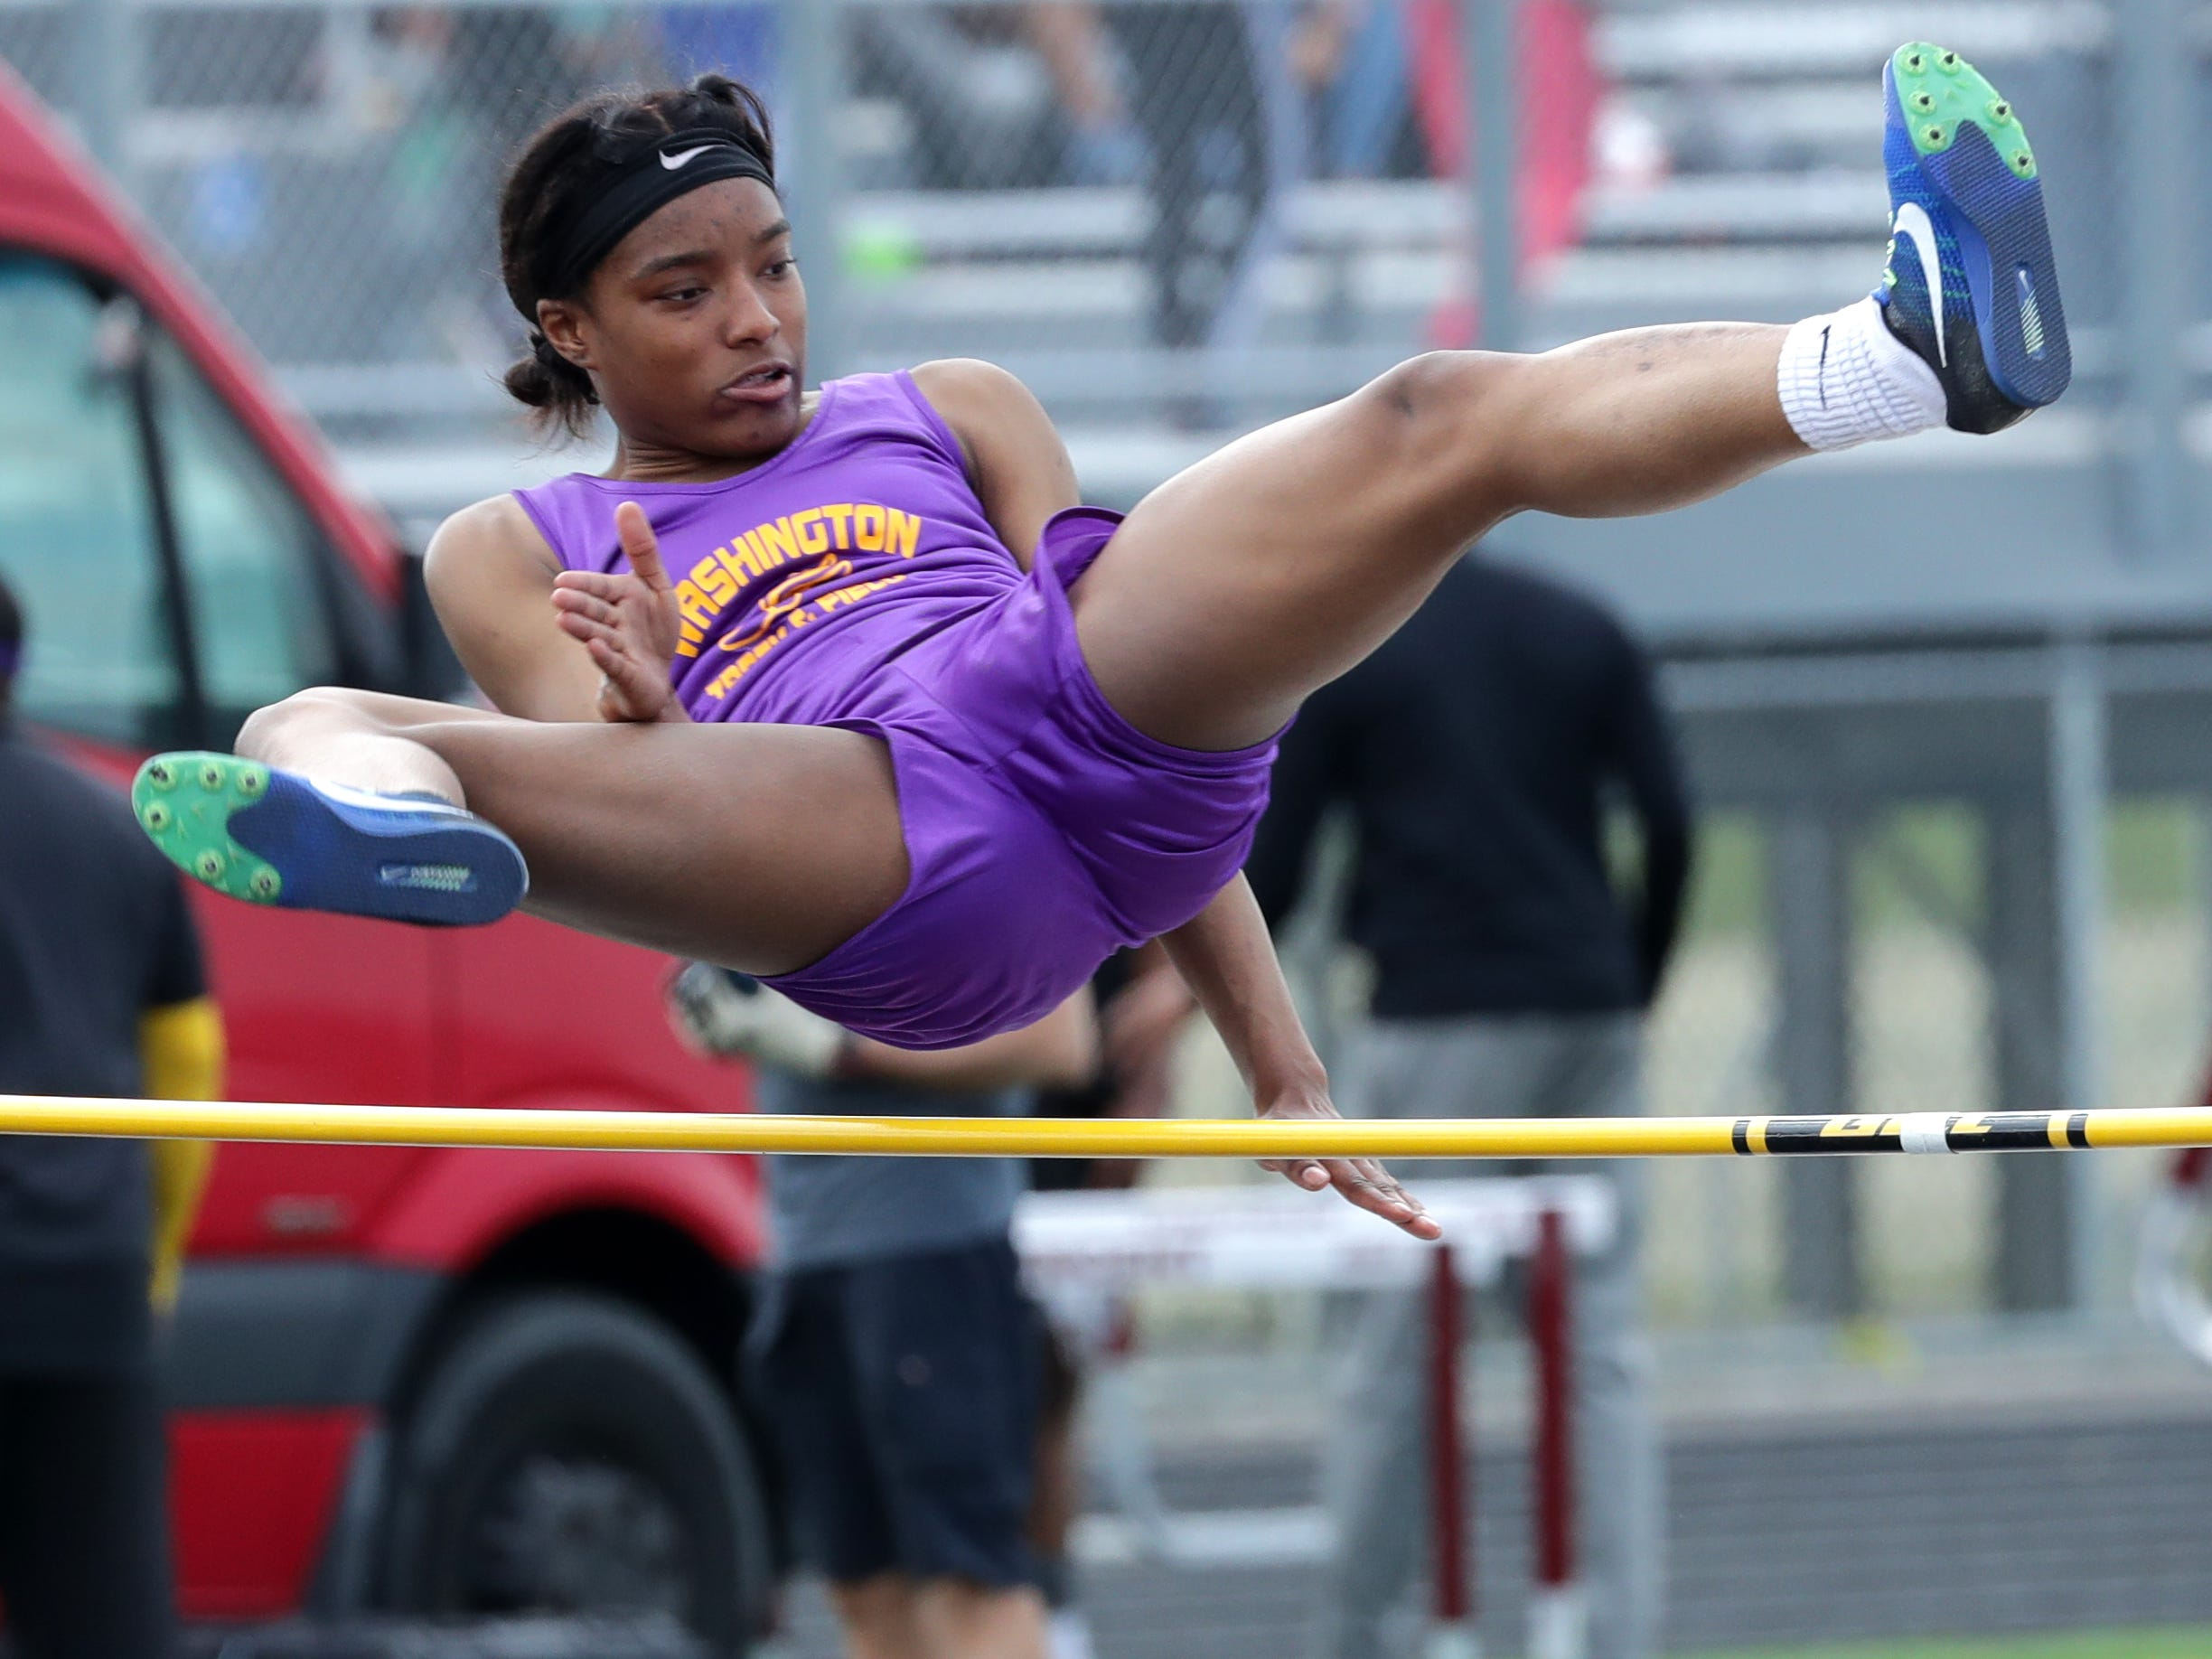 Milwaukee Washington's Destiny Mitchell competes in the high jump.